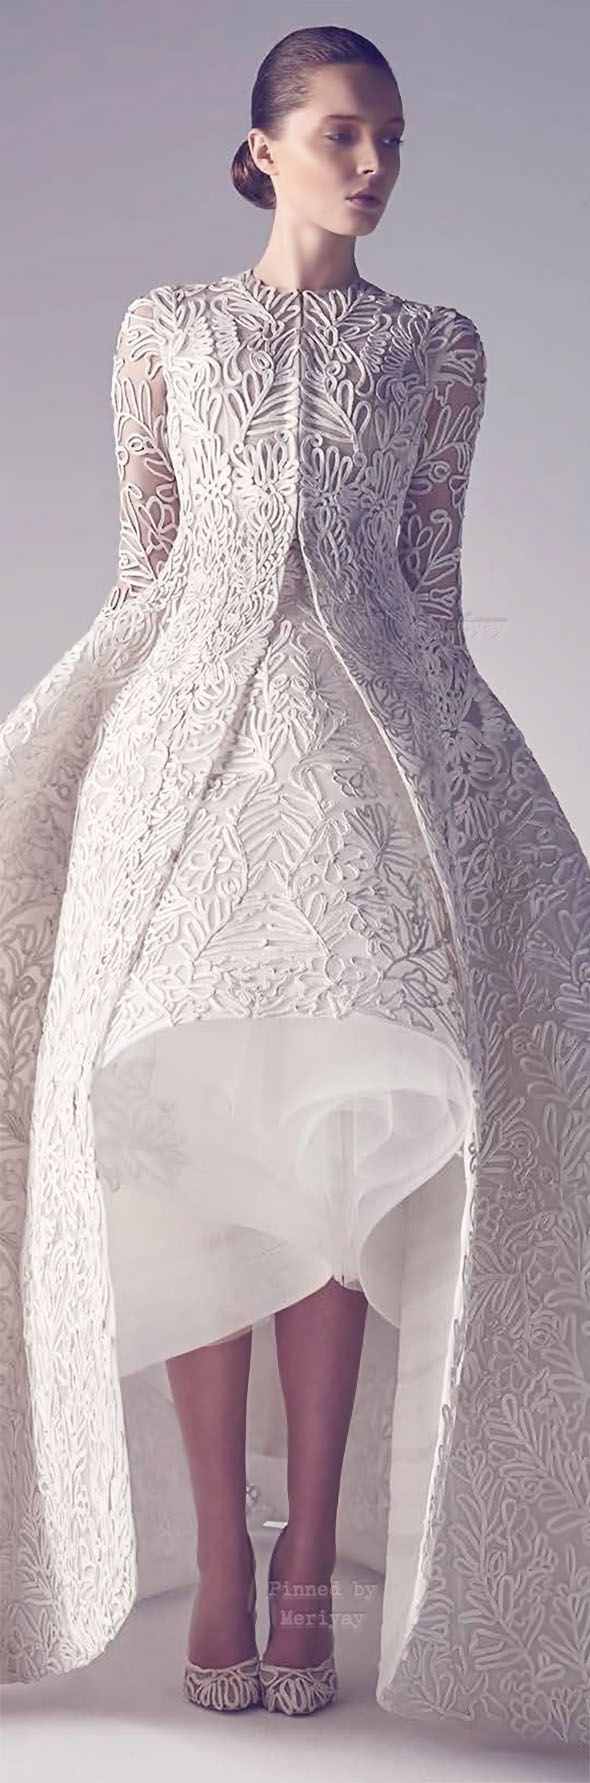 Ashi Haute Couture Spring Summer 2015. Such pretty details!